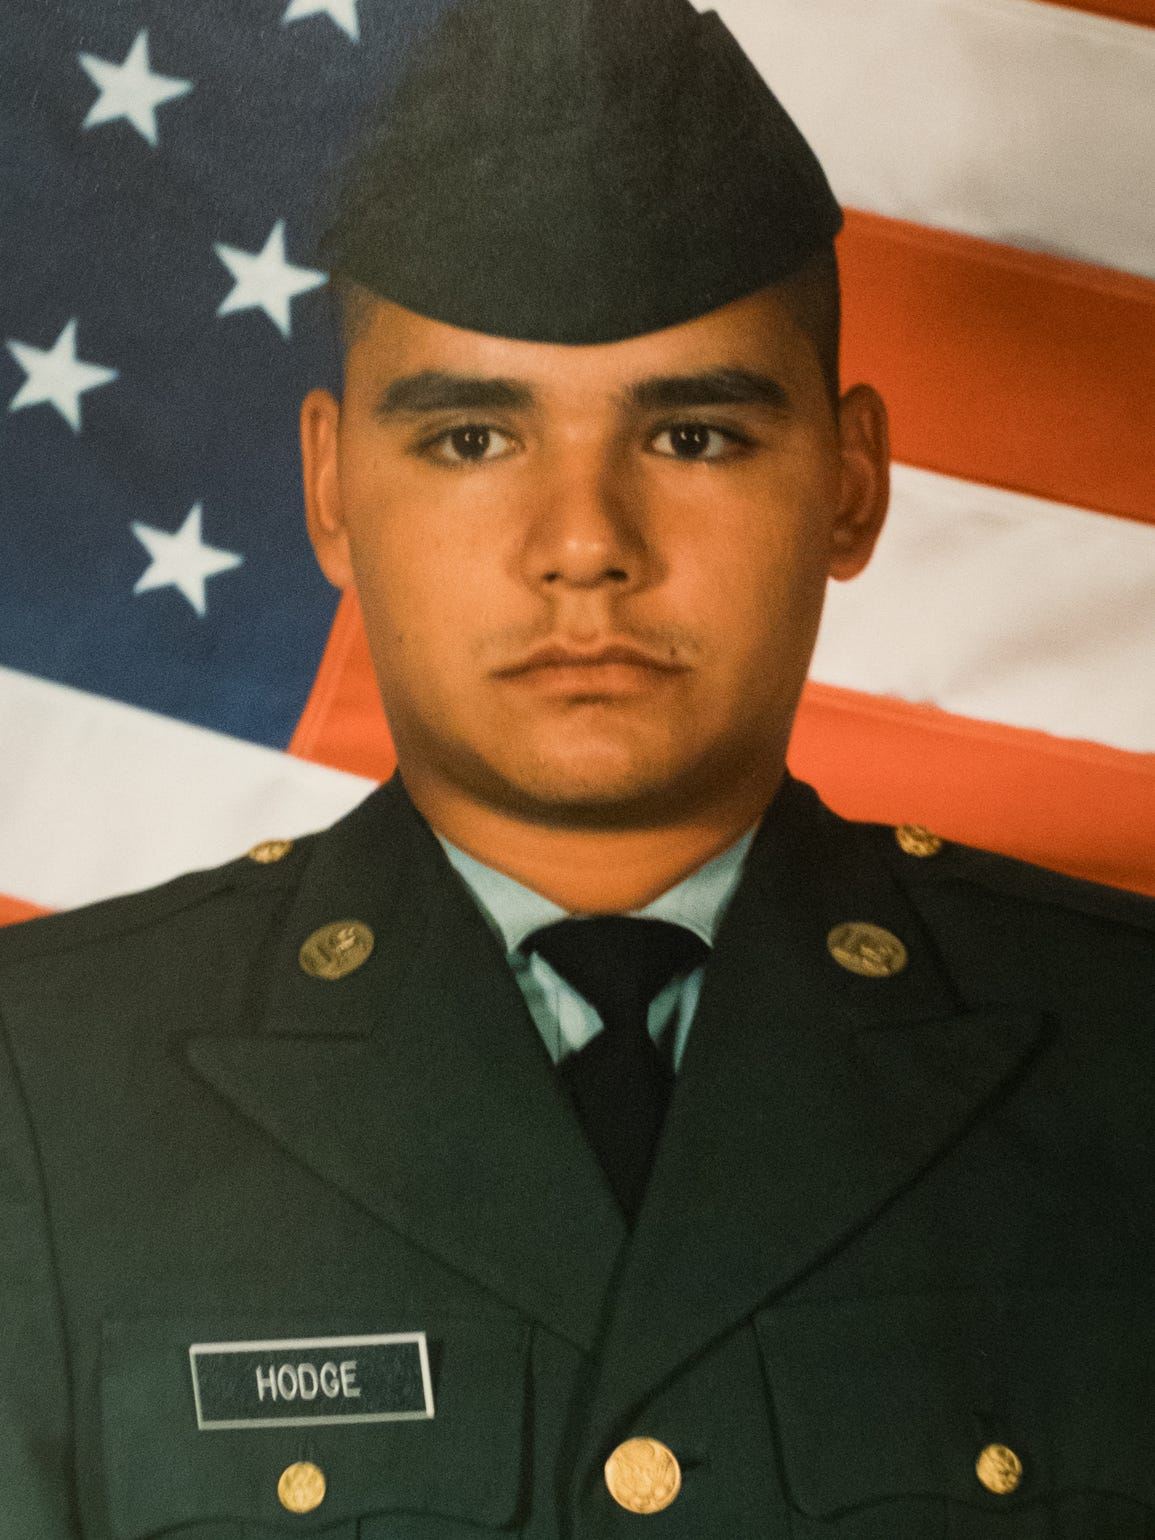 Eddie Hodge enlisted in the Army in 2002.